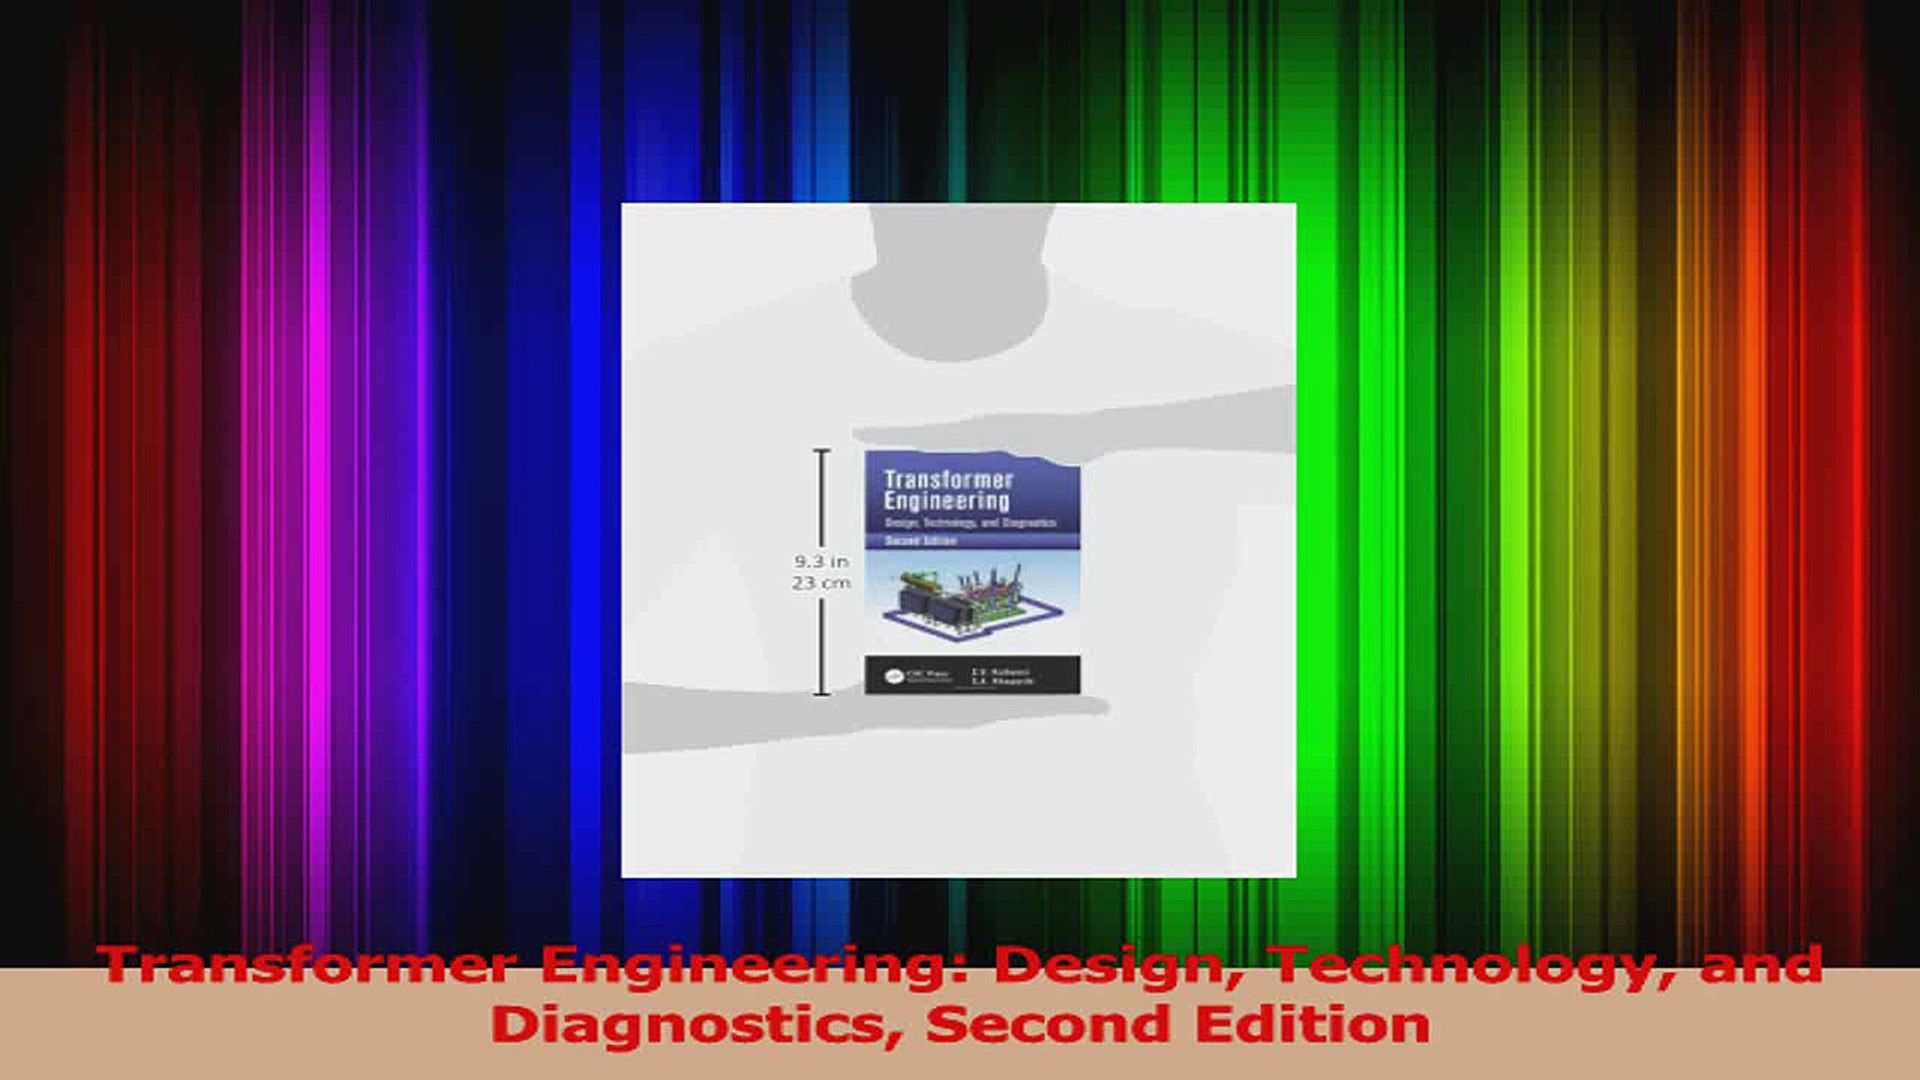 Pdf Download Transformer Engineering Design Technology And Diagnostics Second Edition Pdf Full Ebook Video Dailymotion